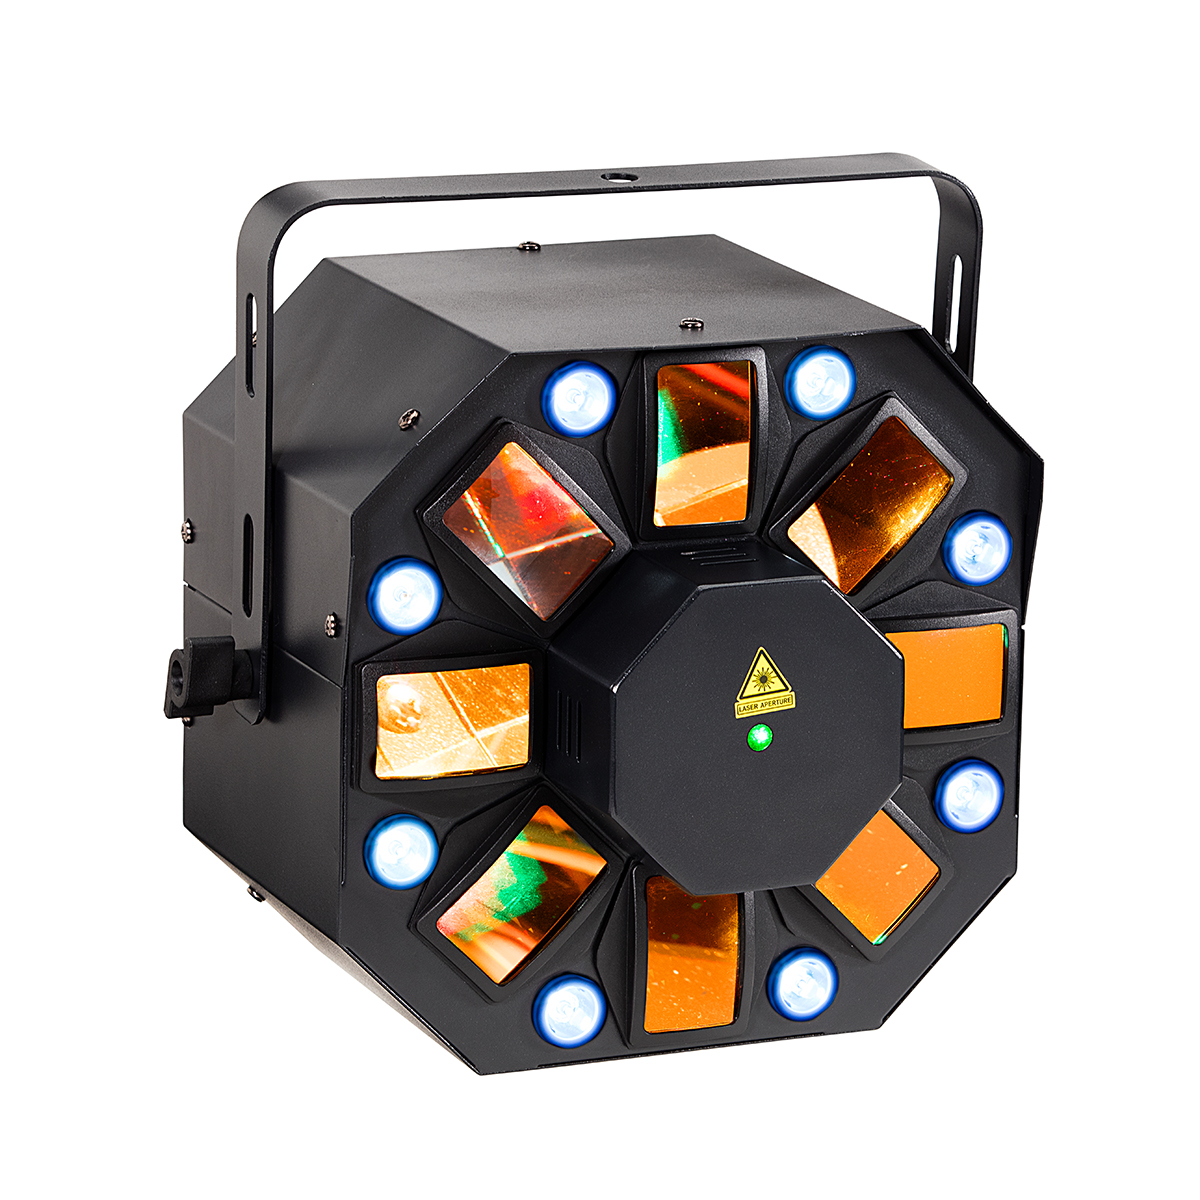 EFFETTO SOUNDSATION CEL-5318-RG LED 5*3W 5IN1 + STROBO 8*1W + LASER RG 200mW